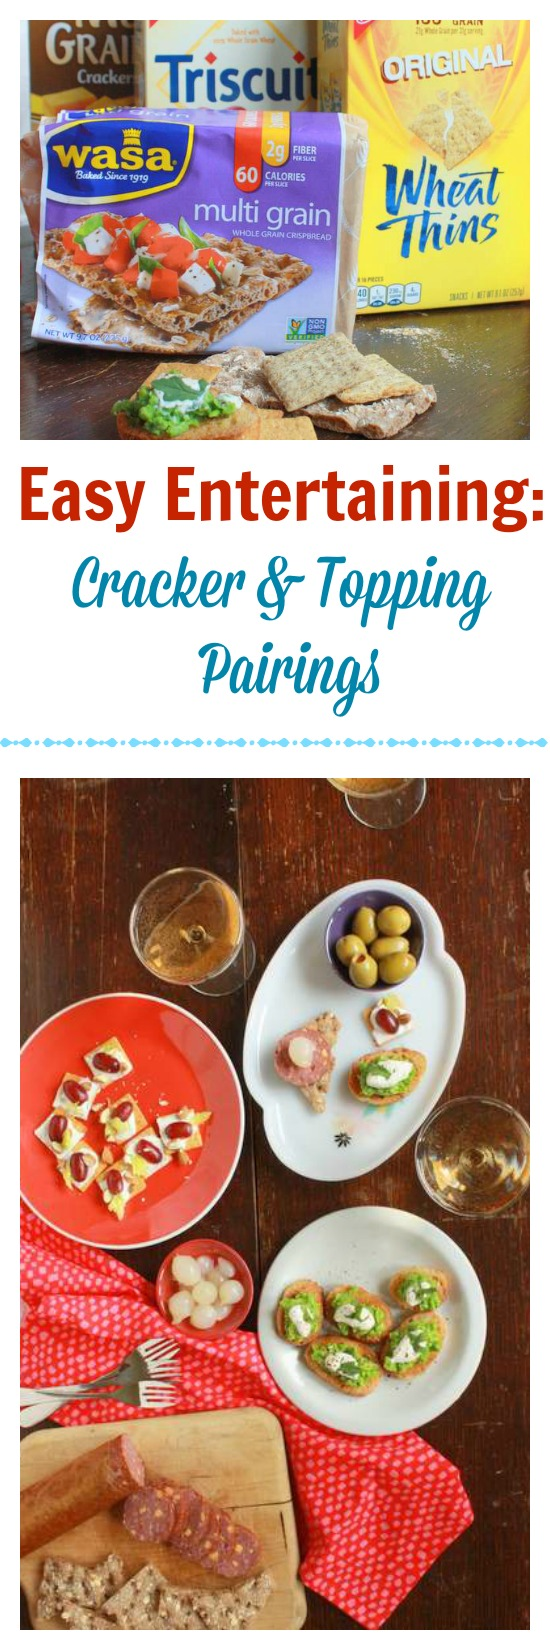 How to pair crackers with toppings | TeaspoonOfSpice.com